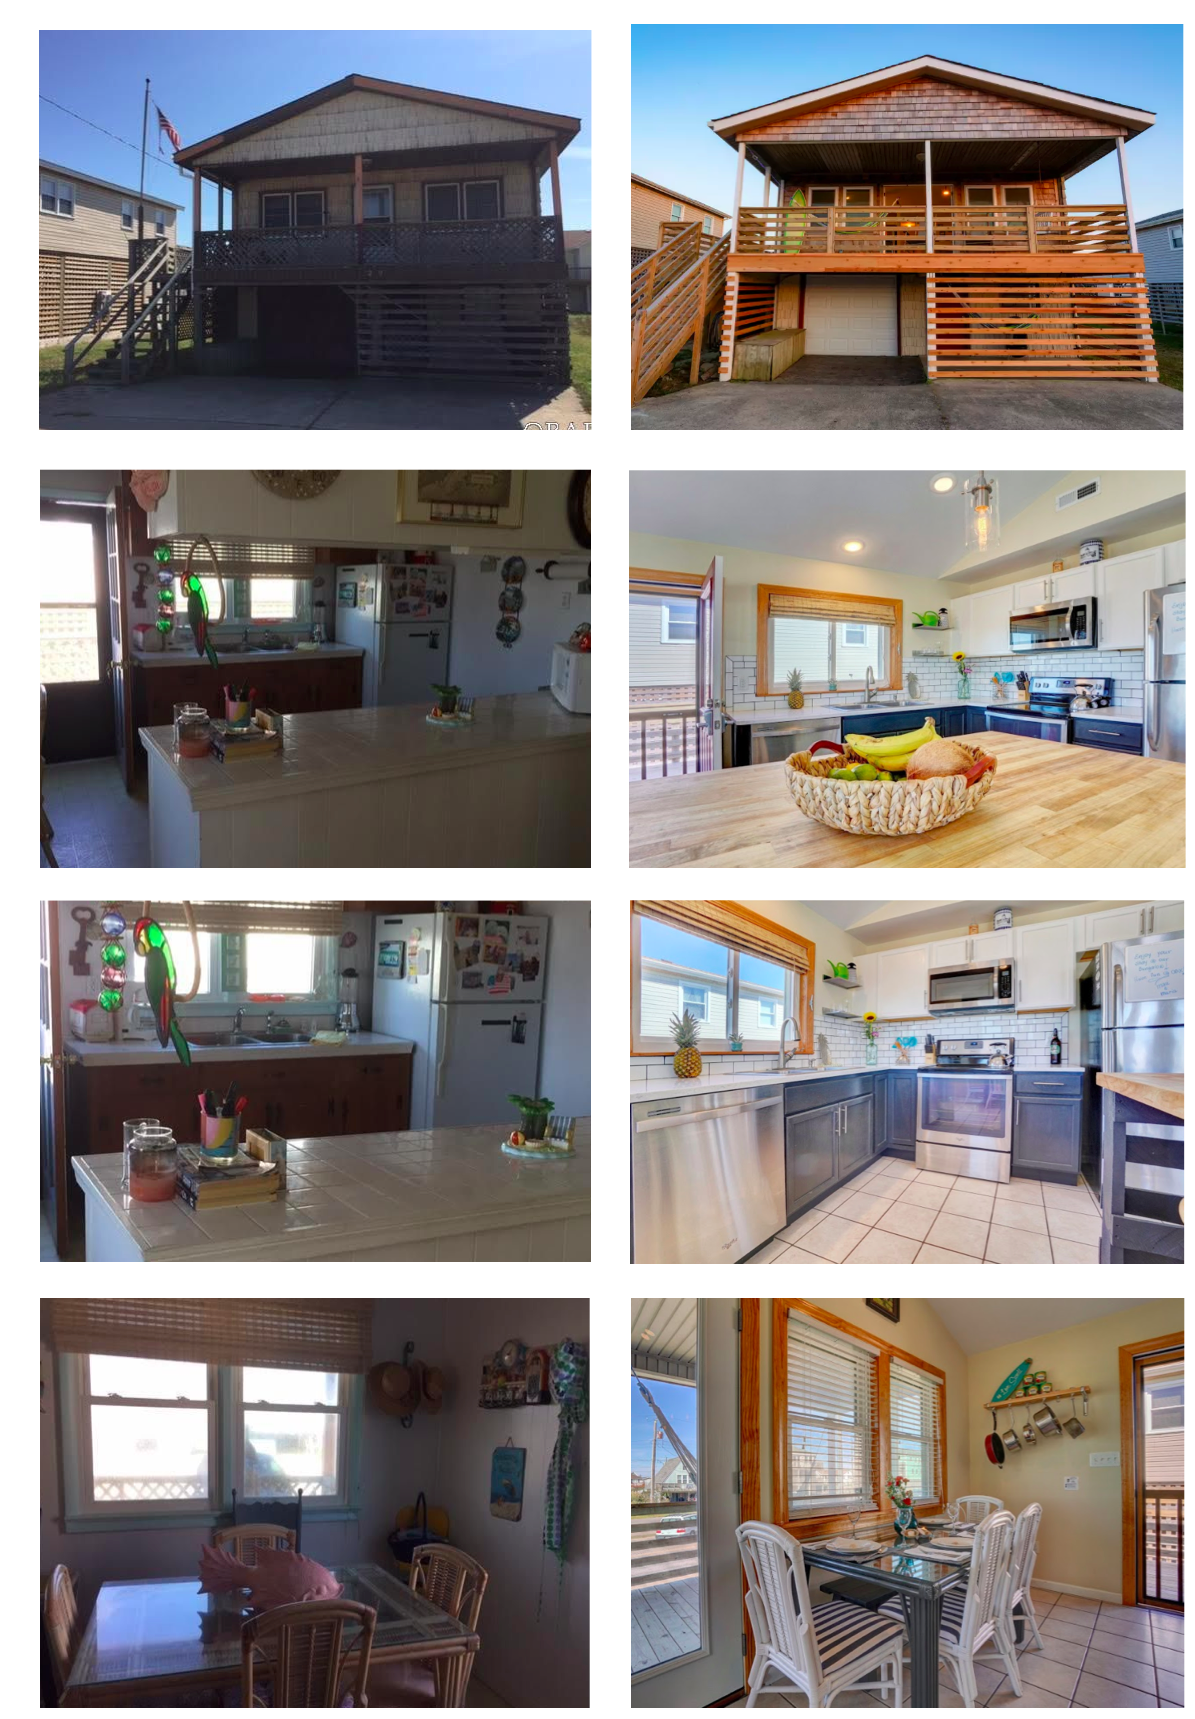 Magical Bungalow 1 Beach House Renovations Before and After